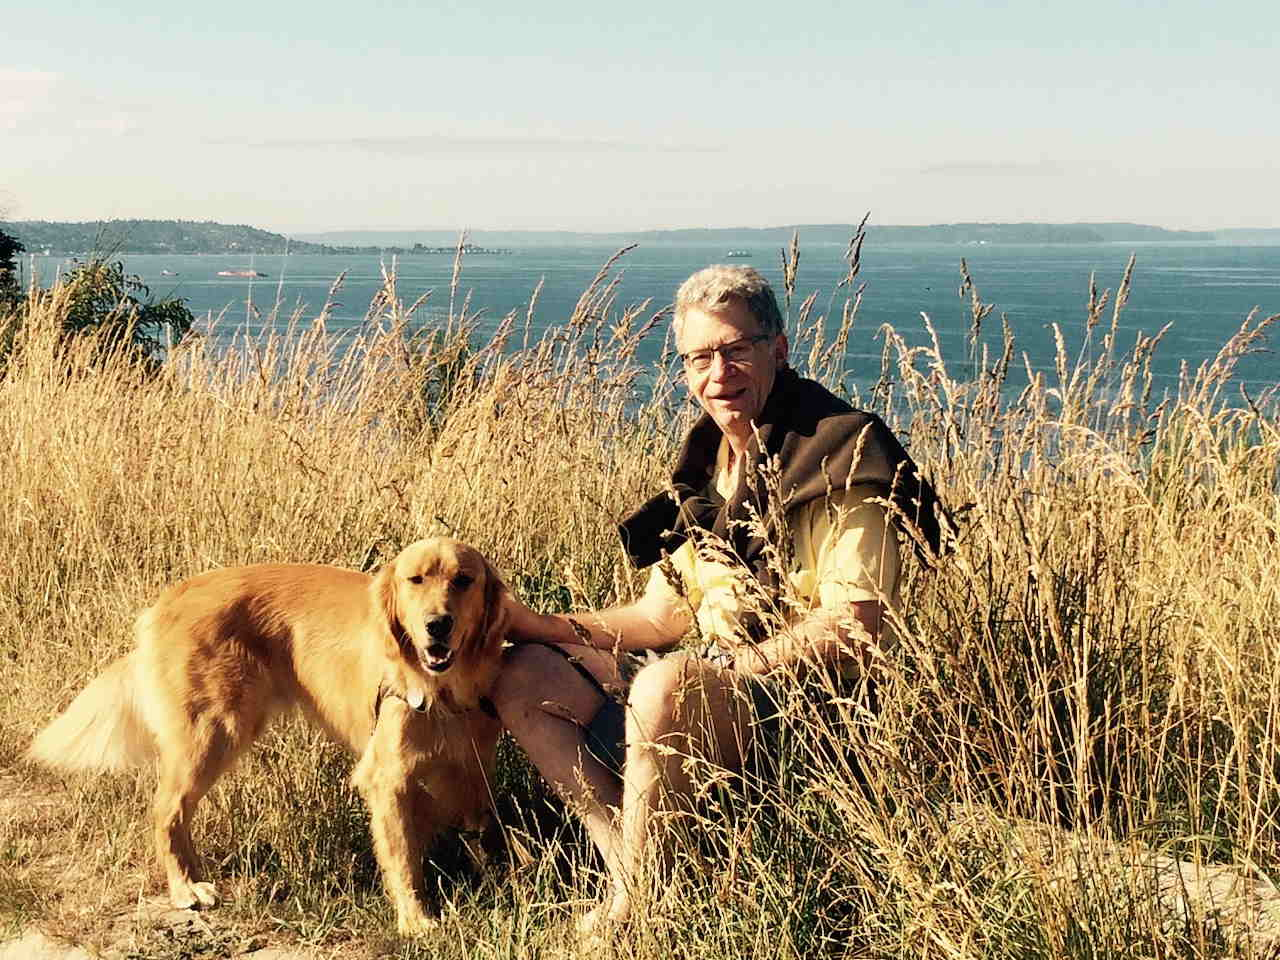 Author Herb Bowie with Golden Retriever Hank